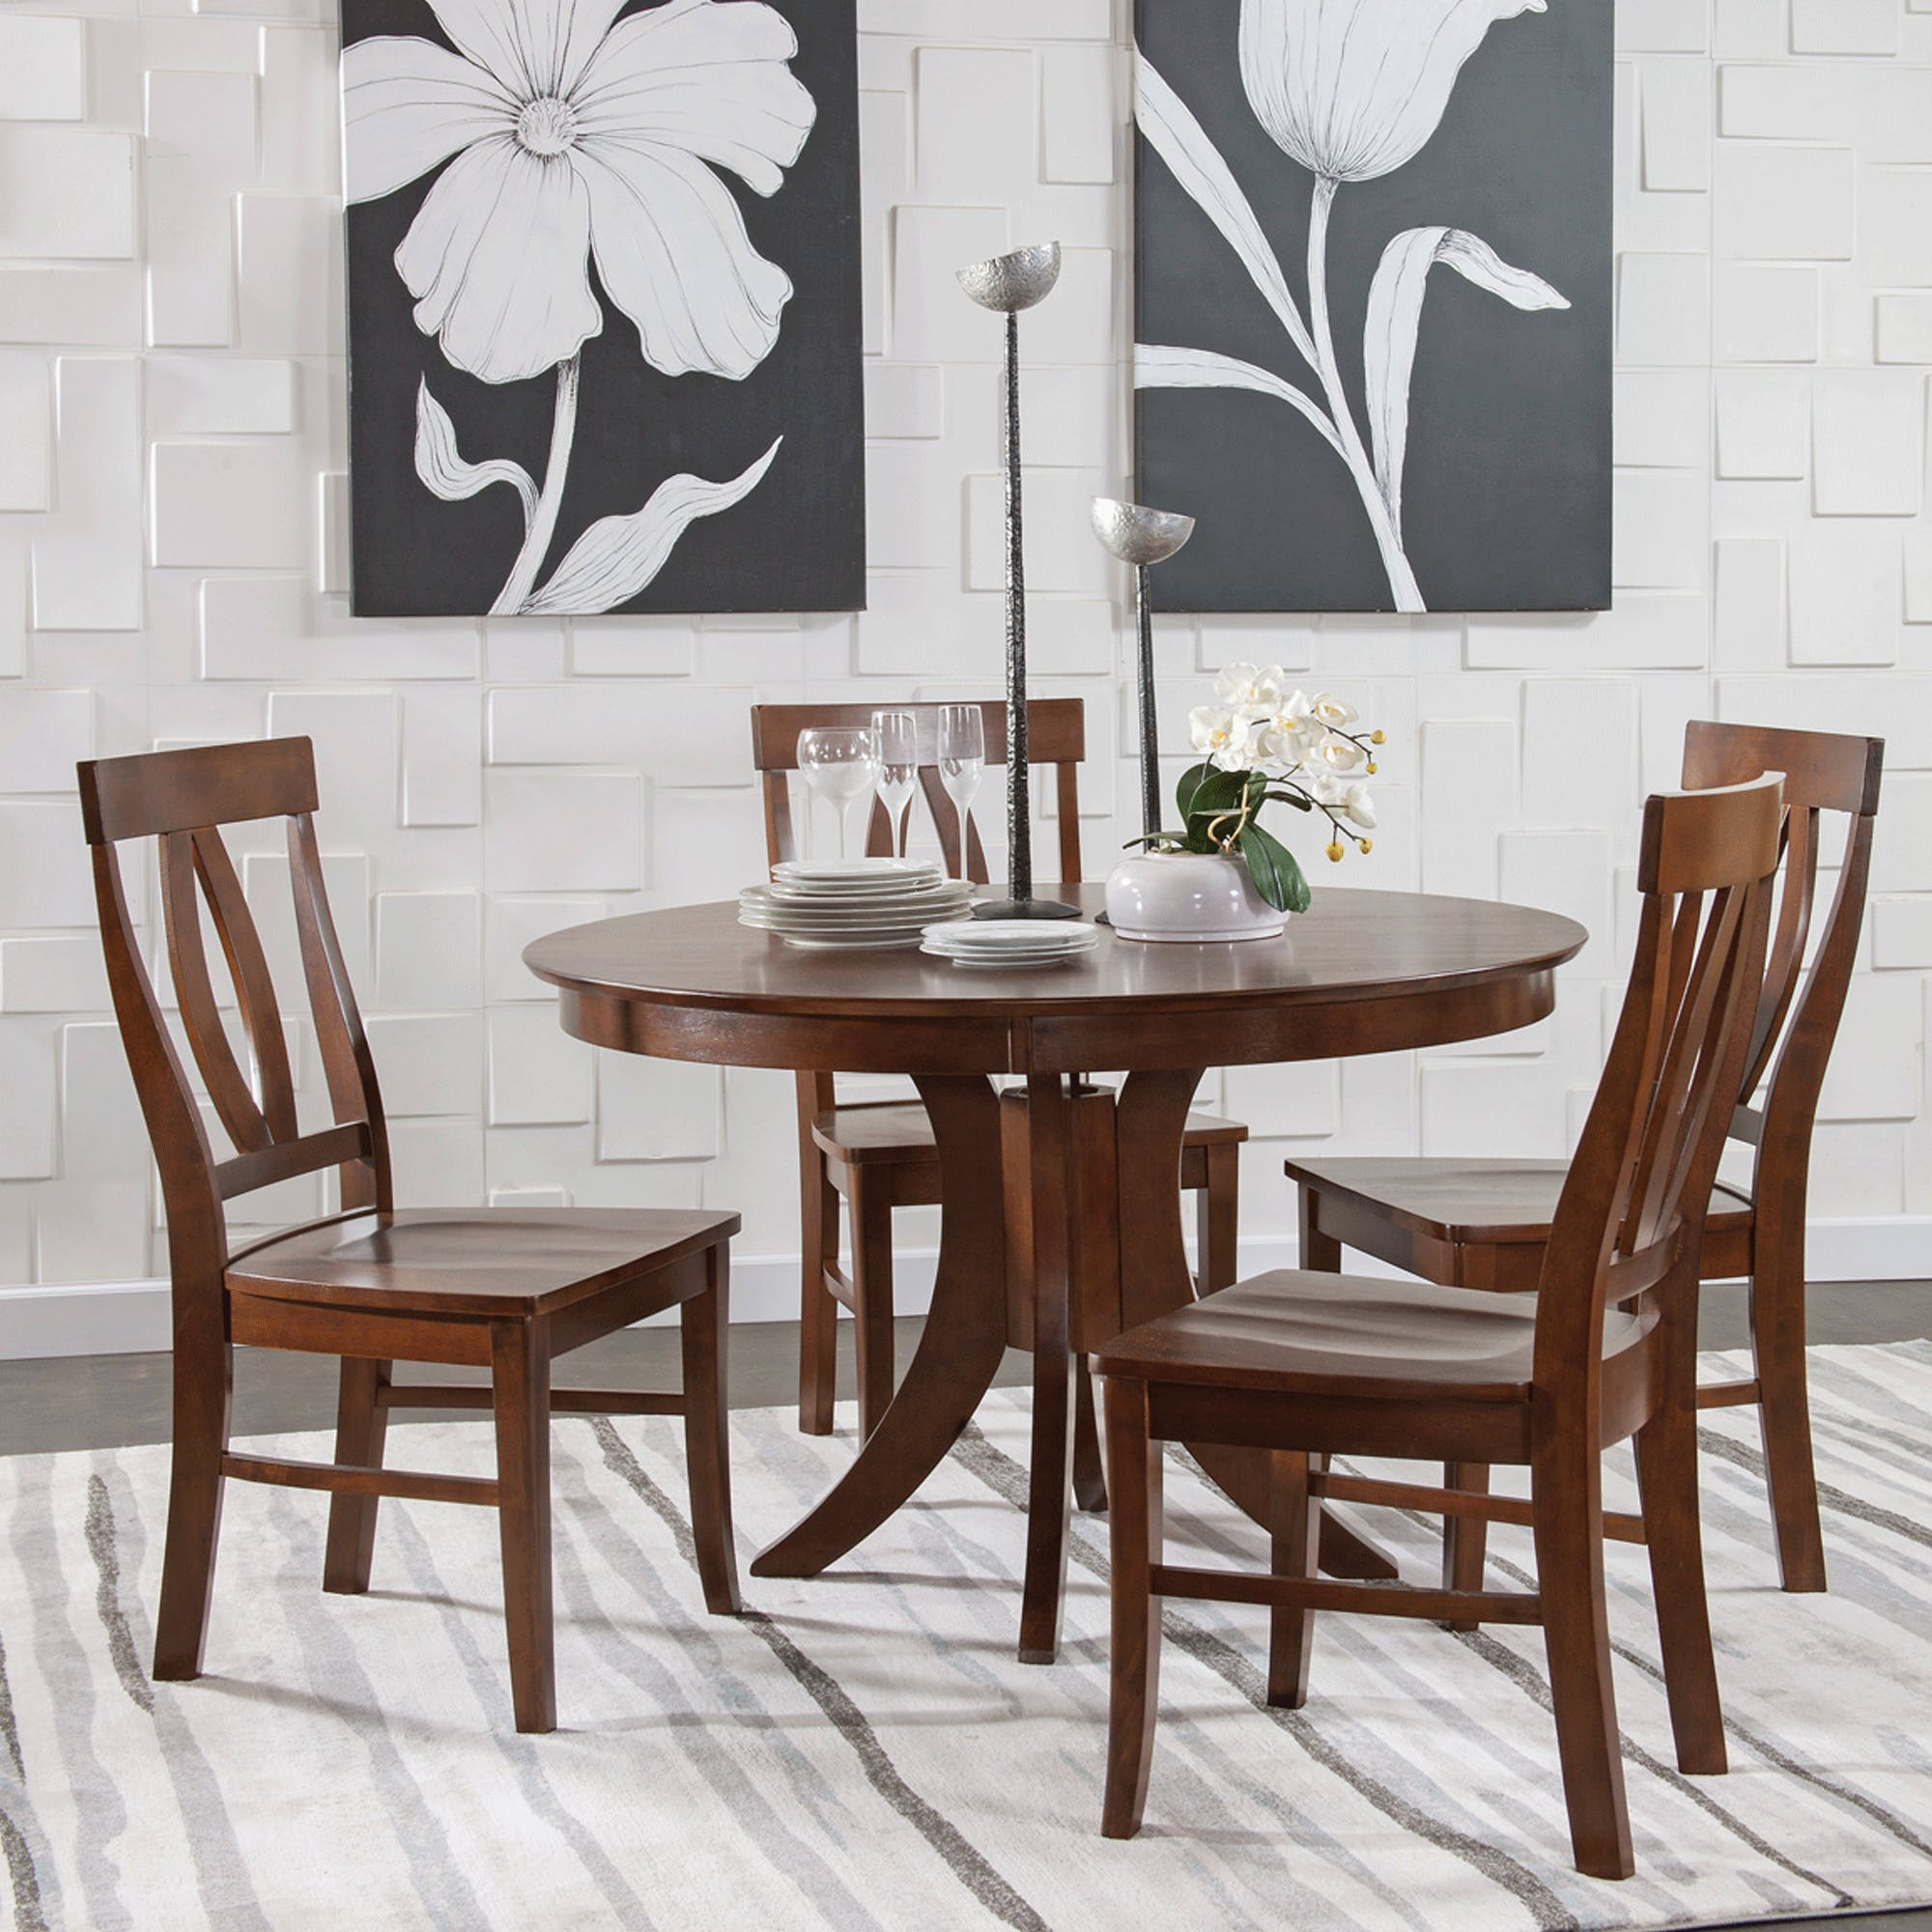 John 4 Piece Dining Sets Inside Current Cosmopolitan Espresso 5 Piece Set – Pub Table With 4 Verona Stools (View 8 of 20)